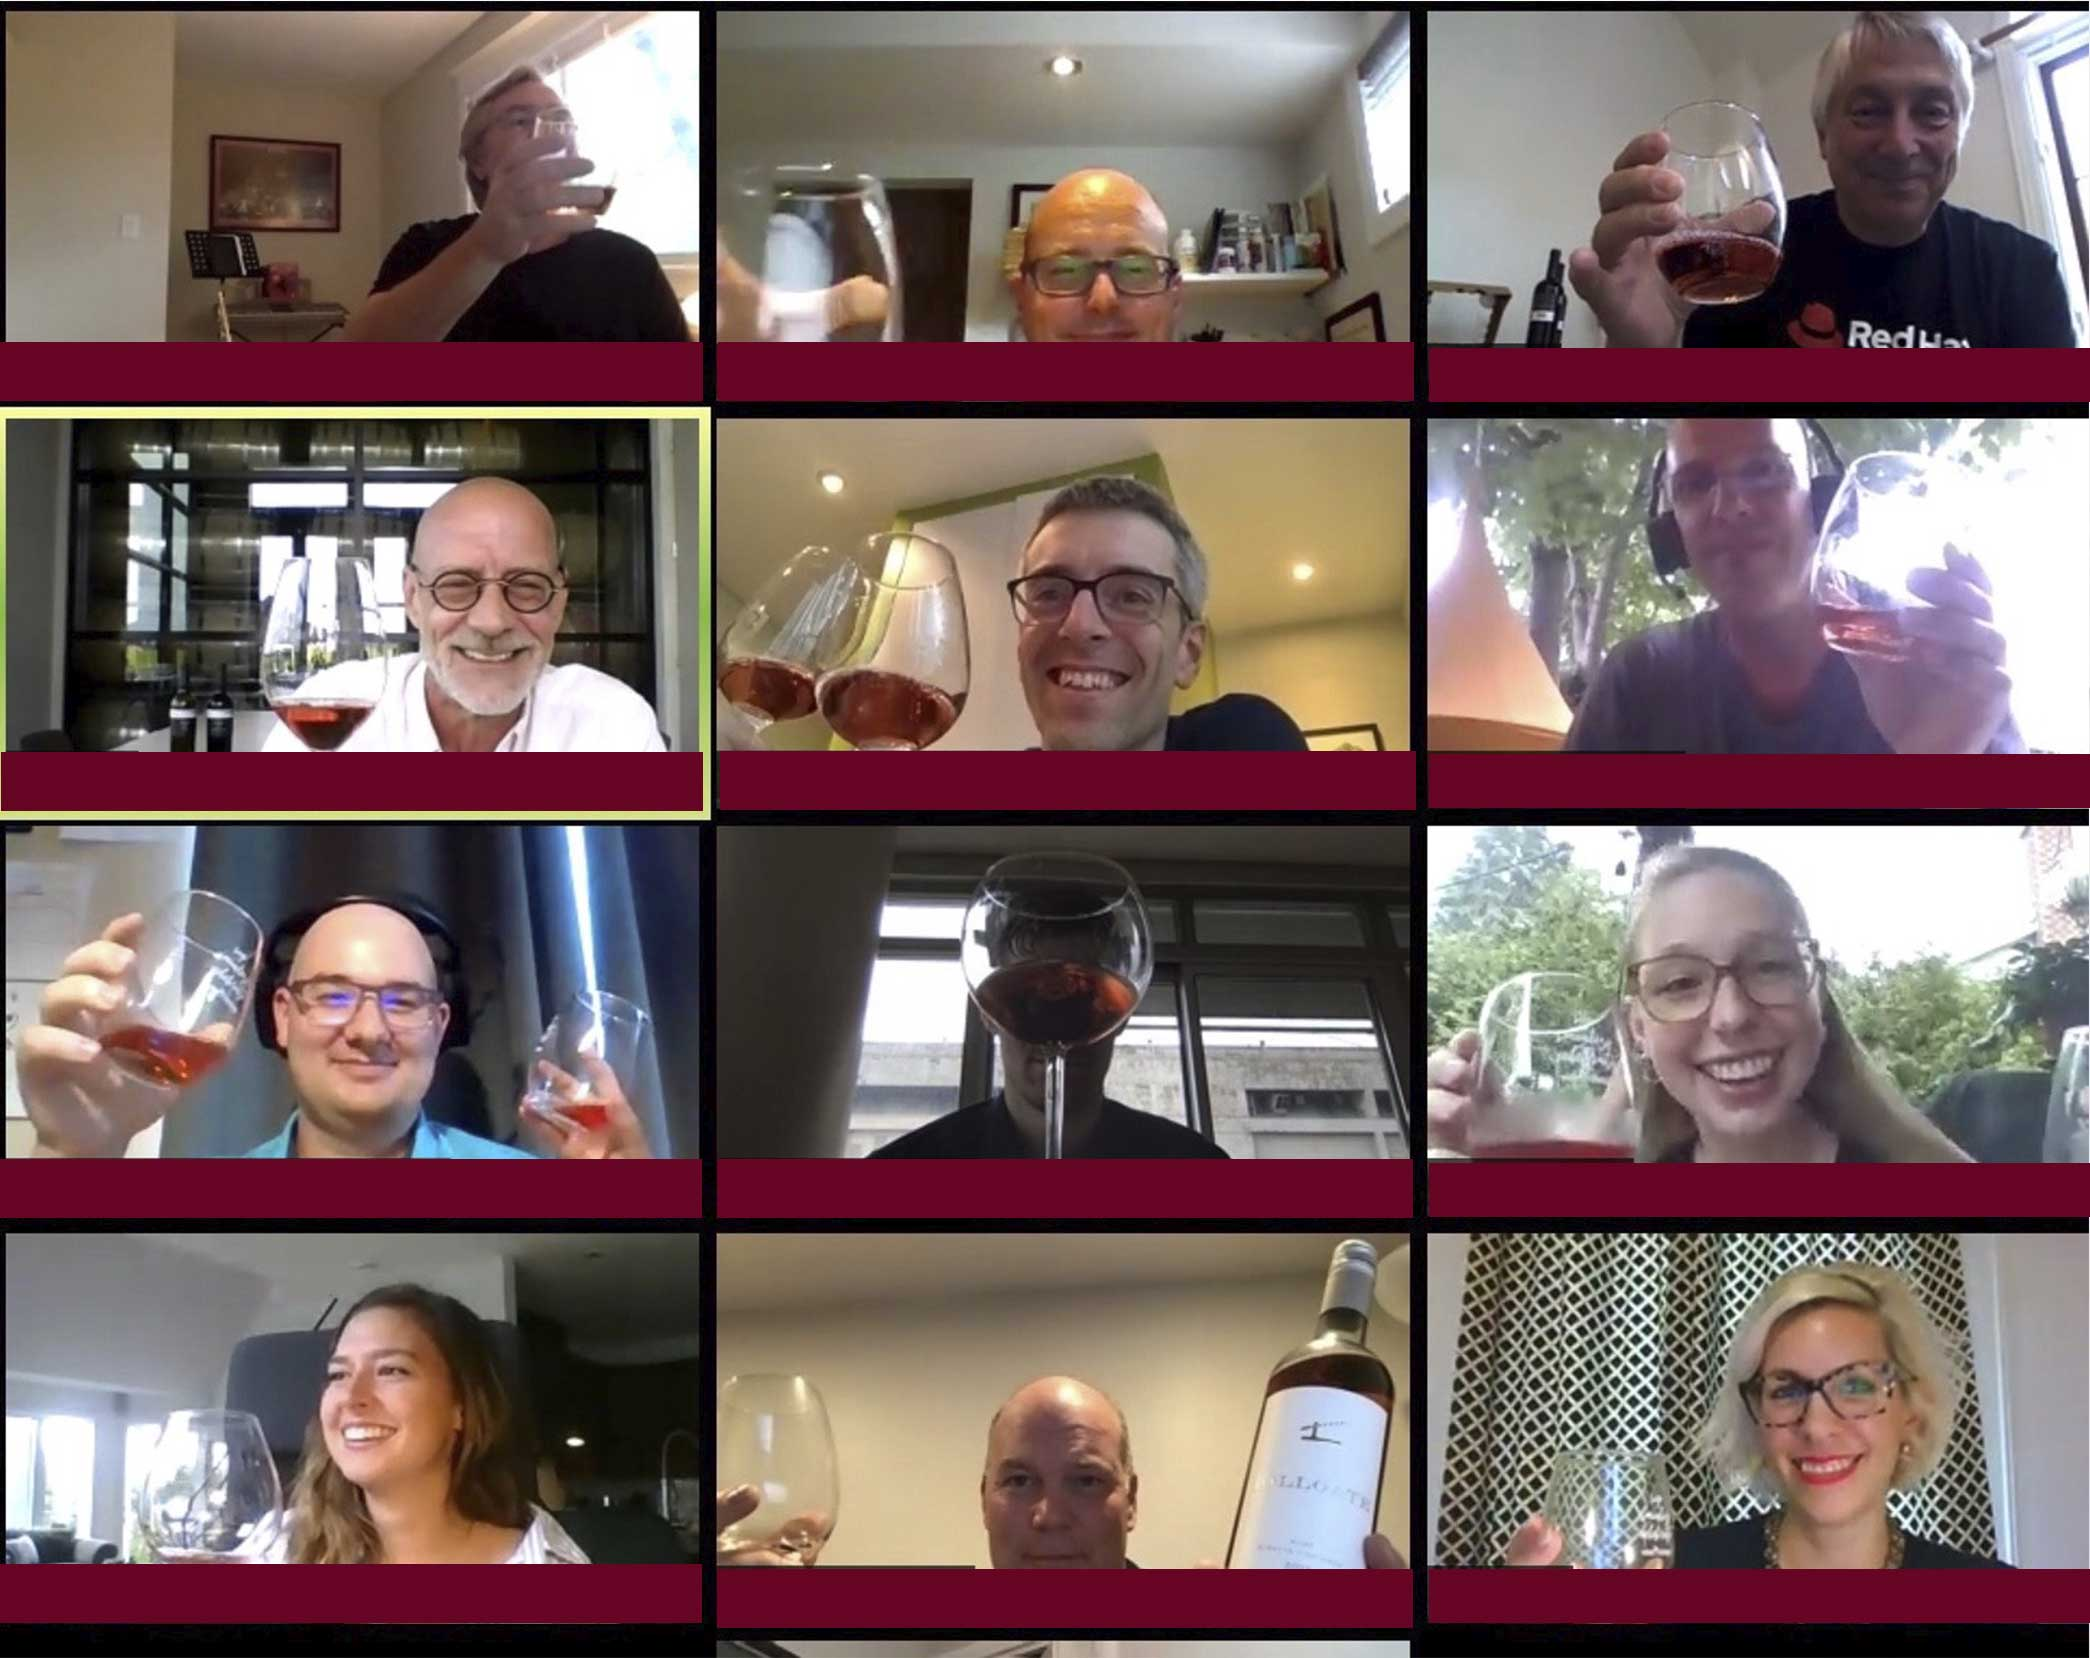 Virtual Wine tasting group